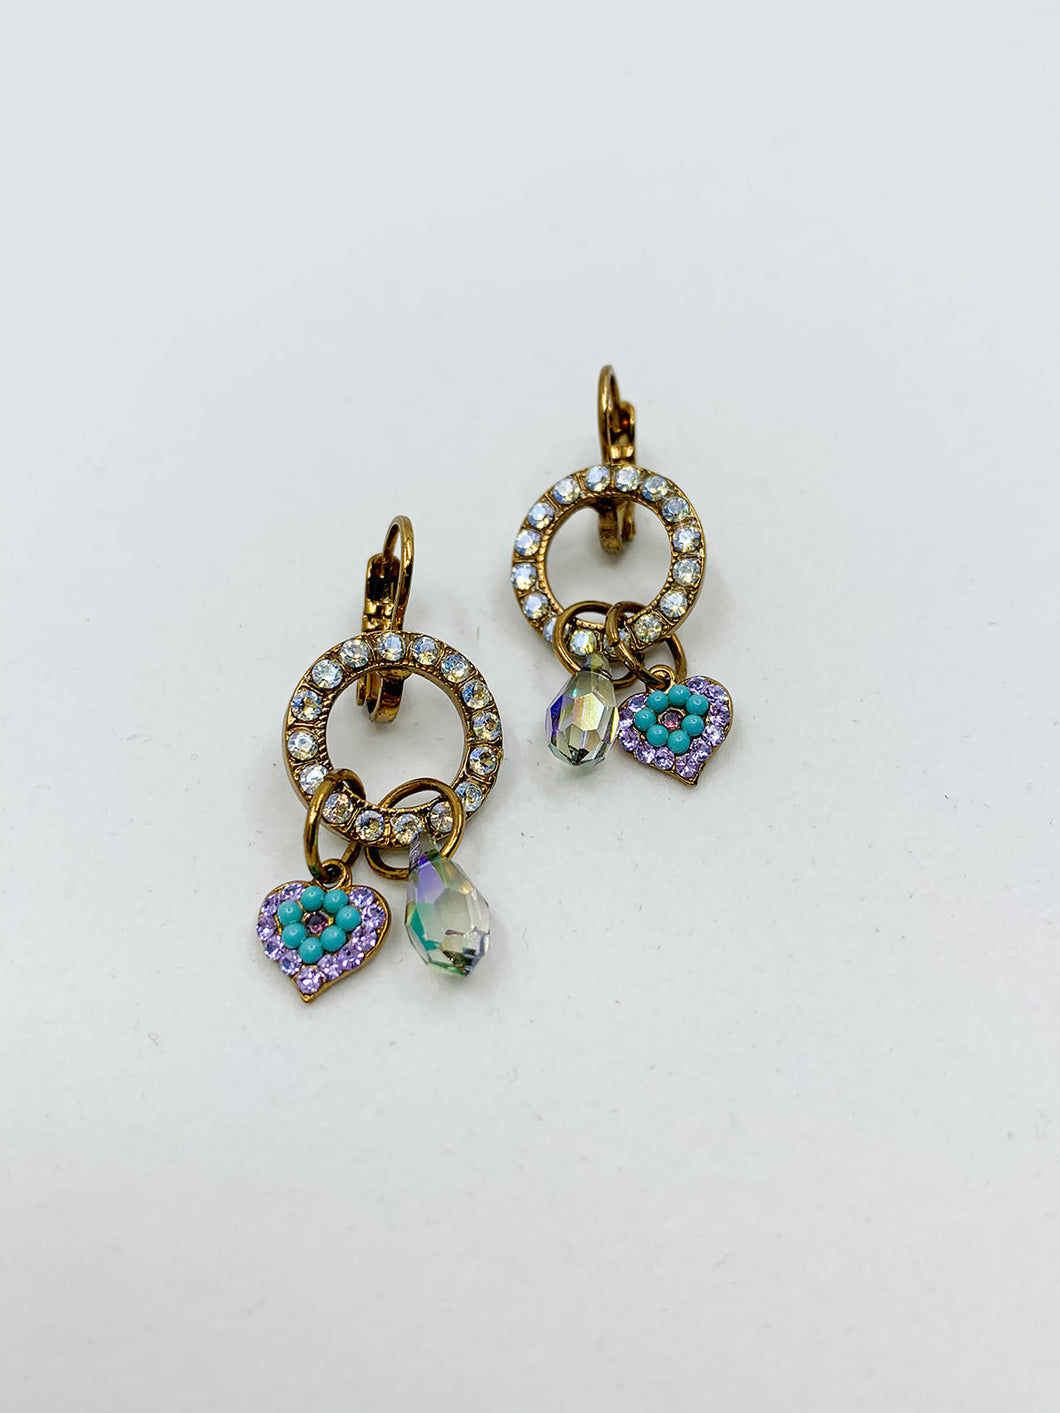 Mariana Lavender Earring with Charms